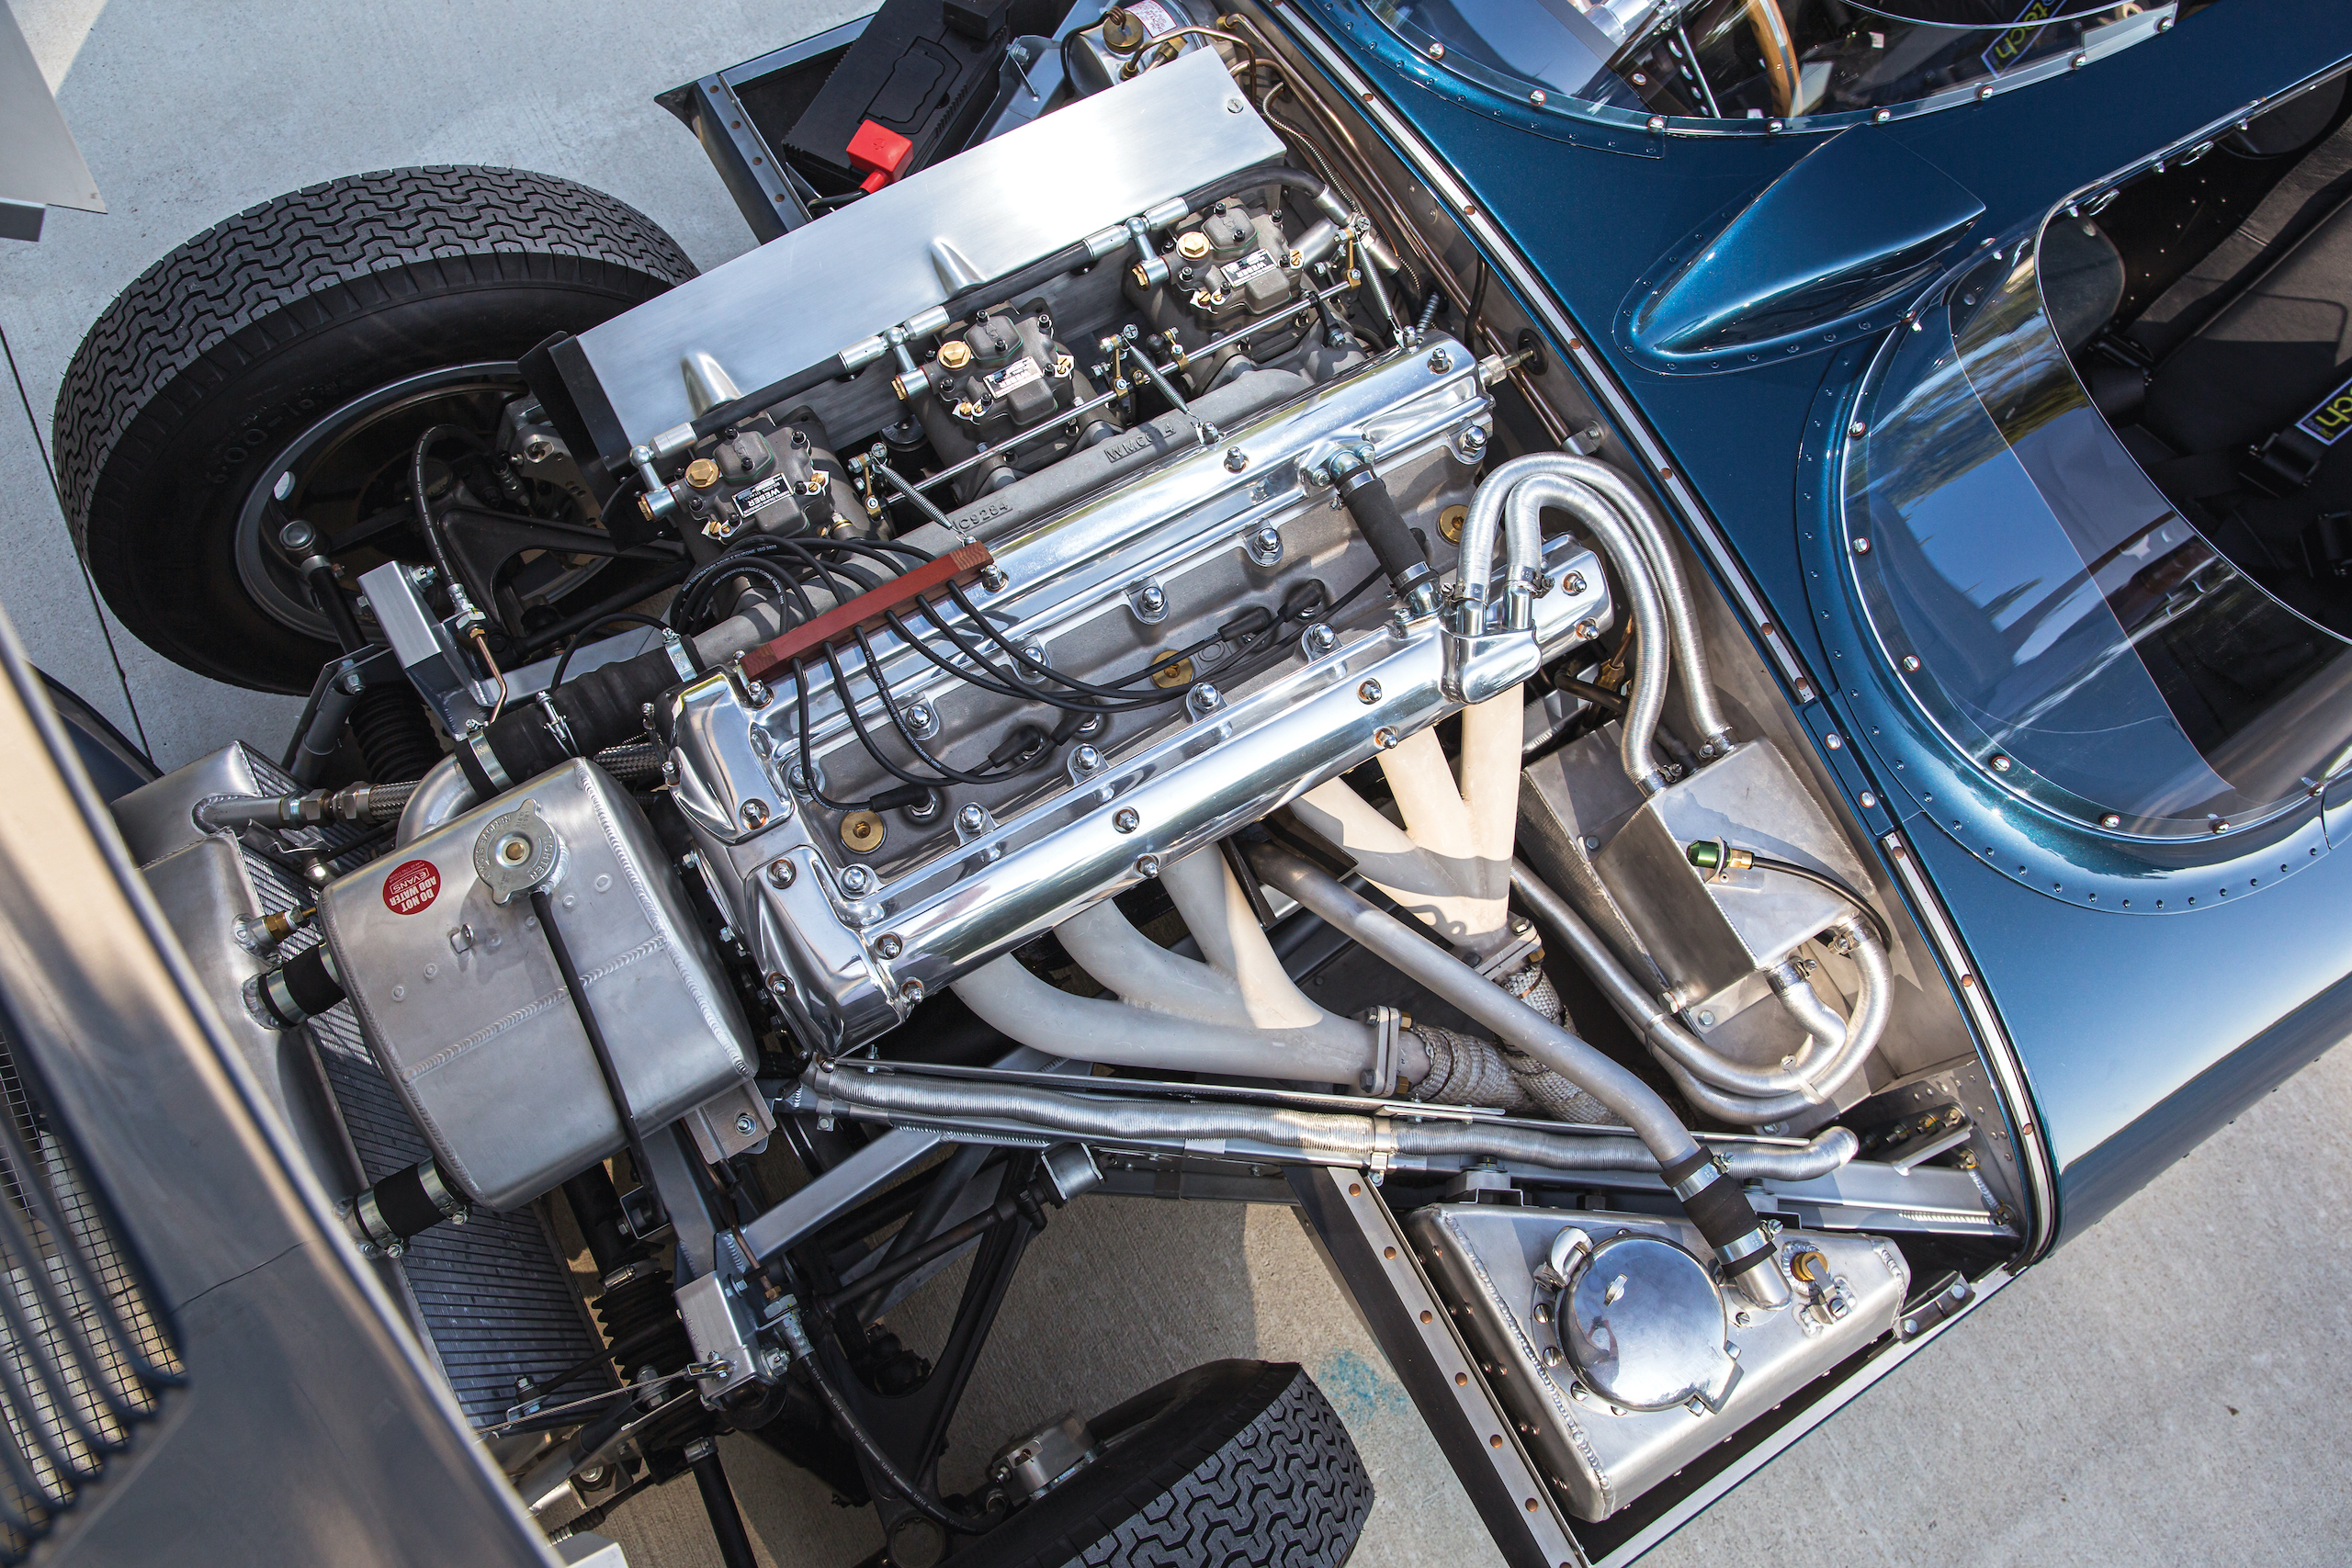 1955 Jag D-Type engine overhead